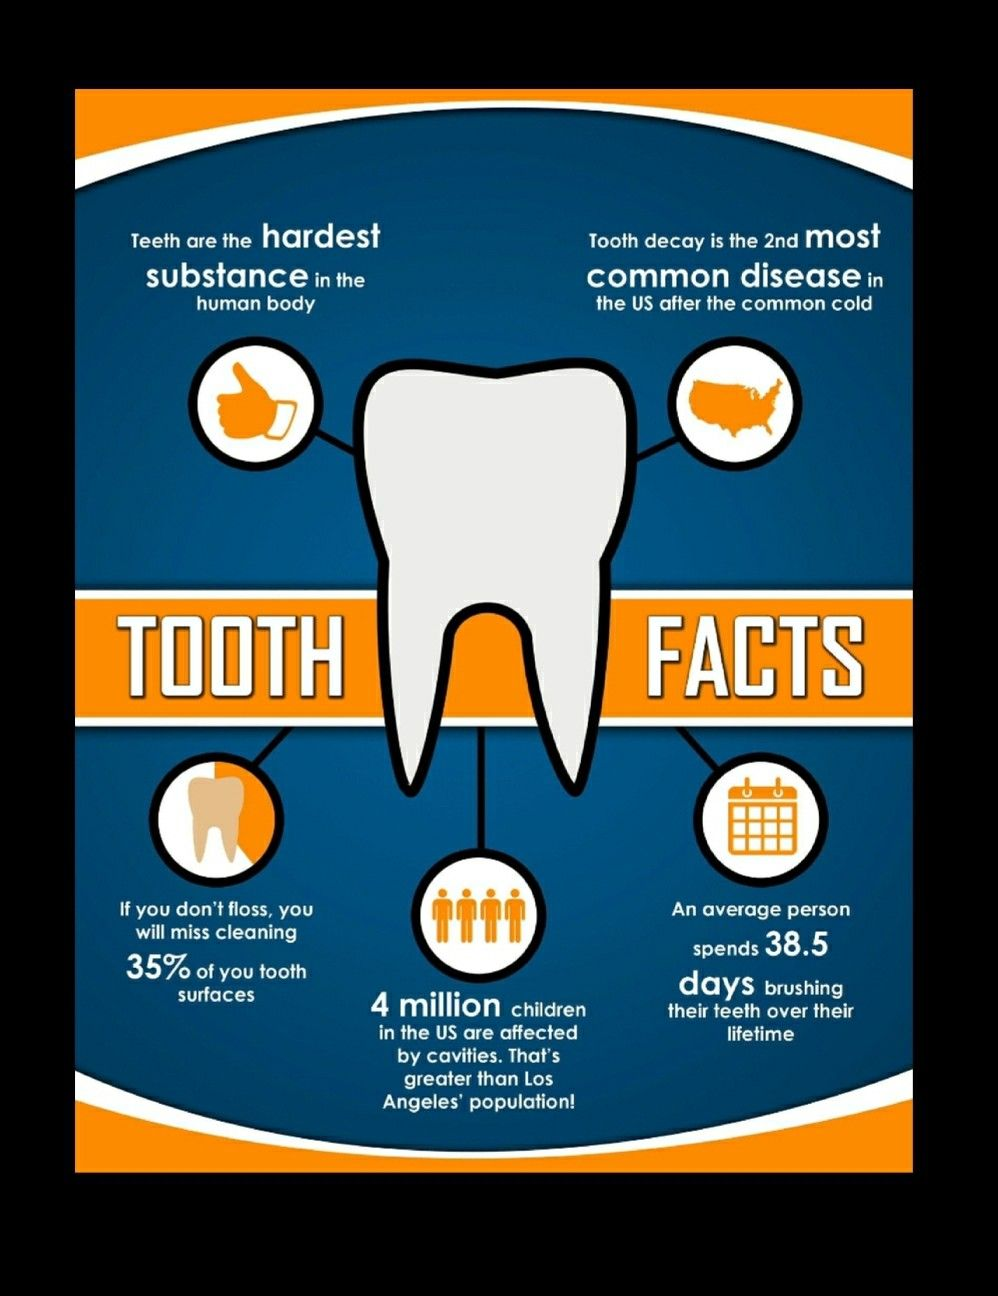 Tooth facts  #dentalfacts